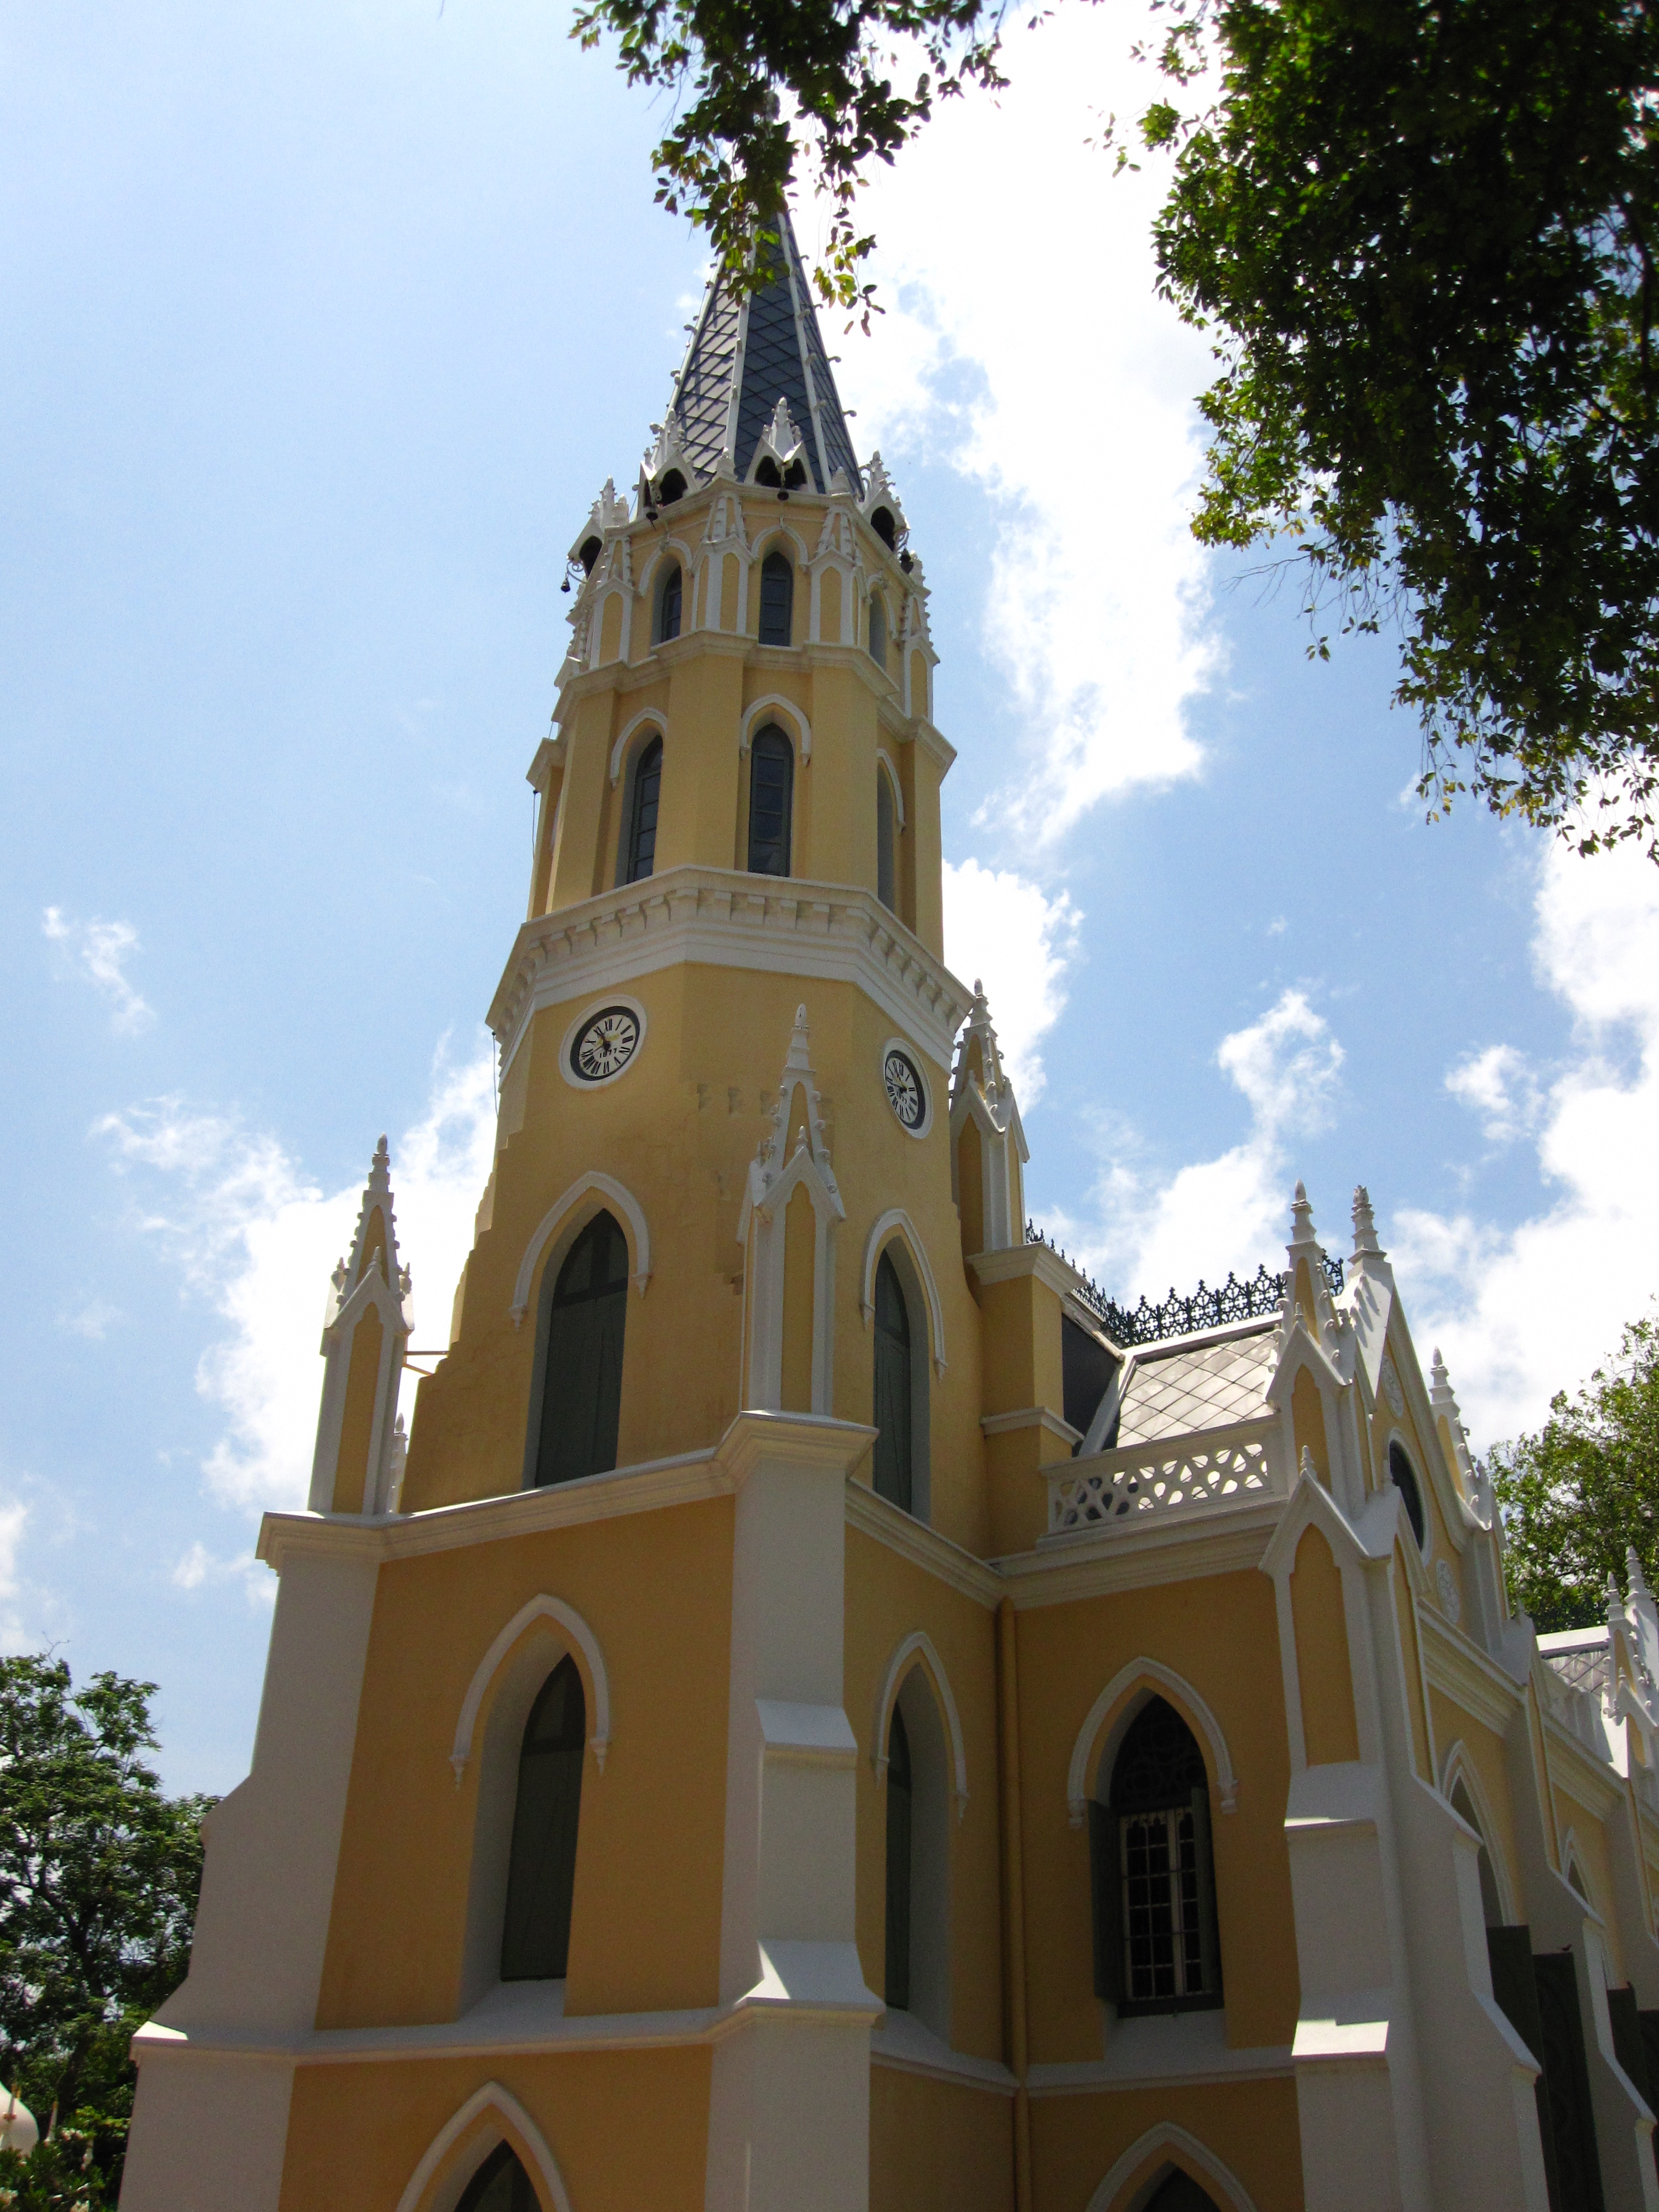 the facade church! *that's what I call it*